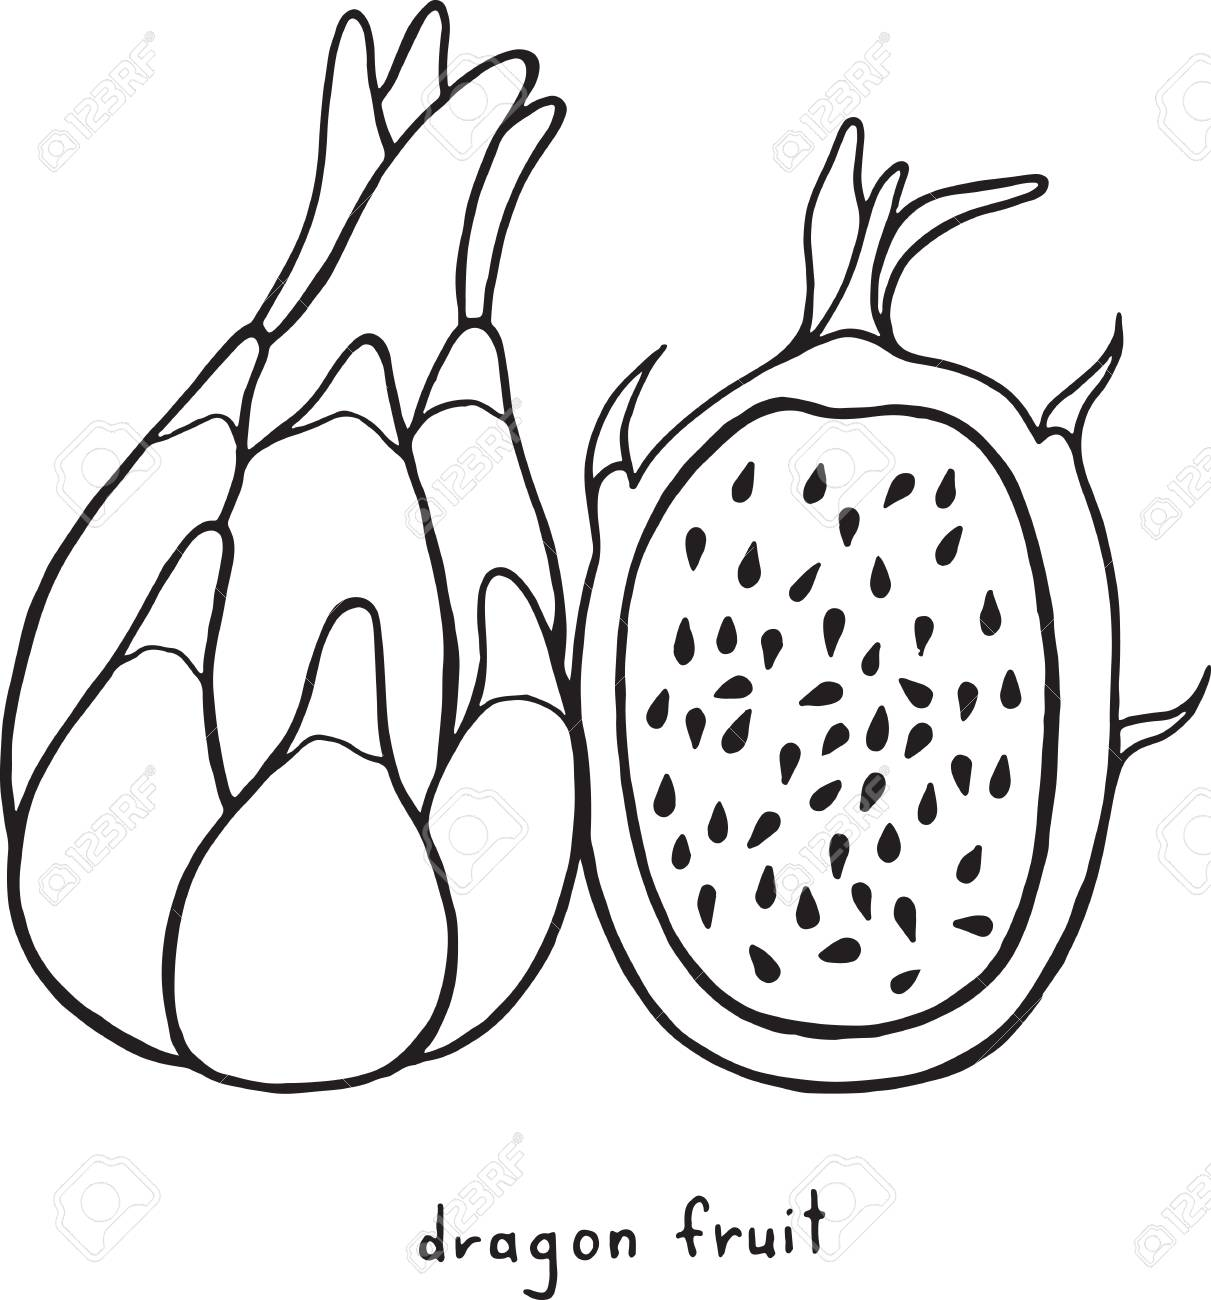 Dragon Fruit Coloring Page. Graphic Vector Black And White Art ...